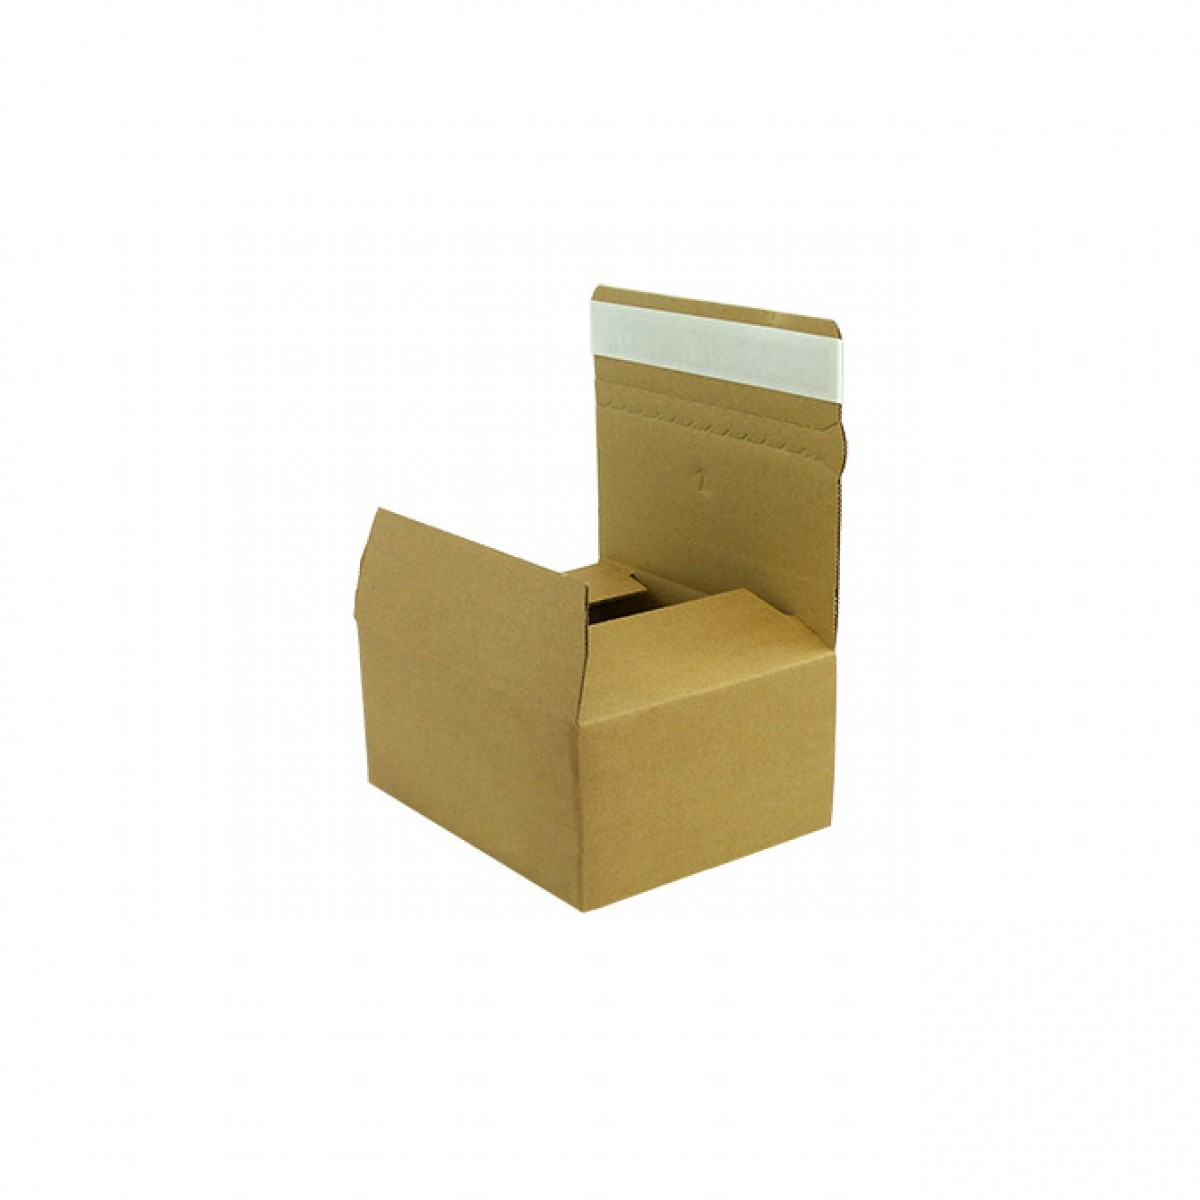 Easybox 310 x 230 x 160 mm